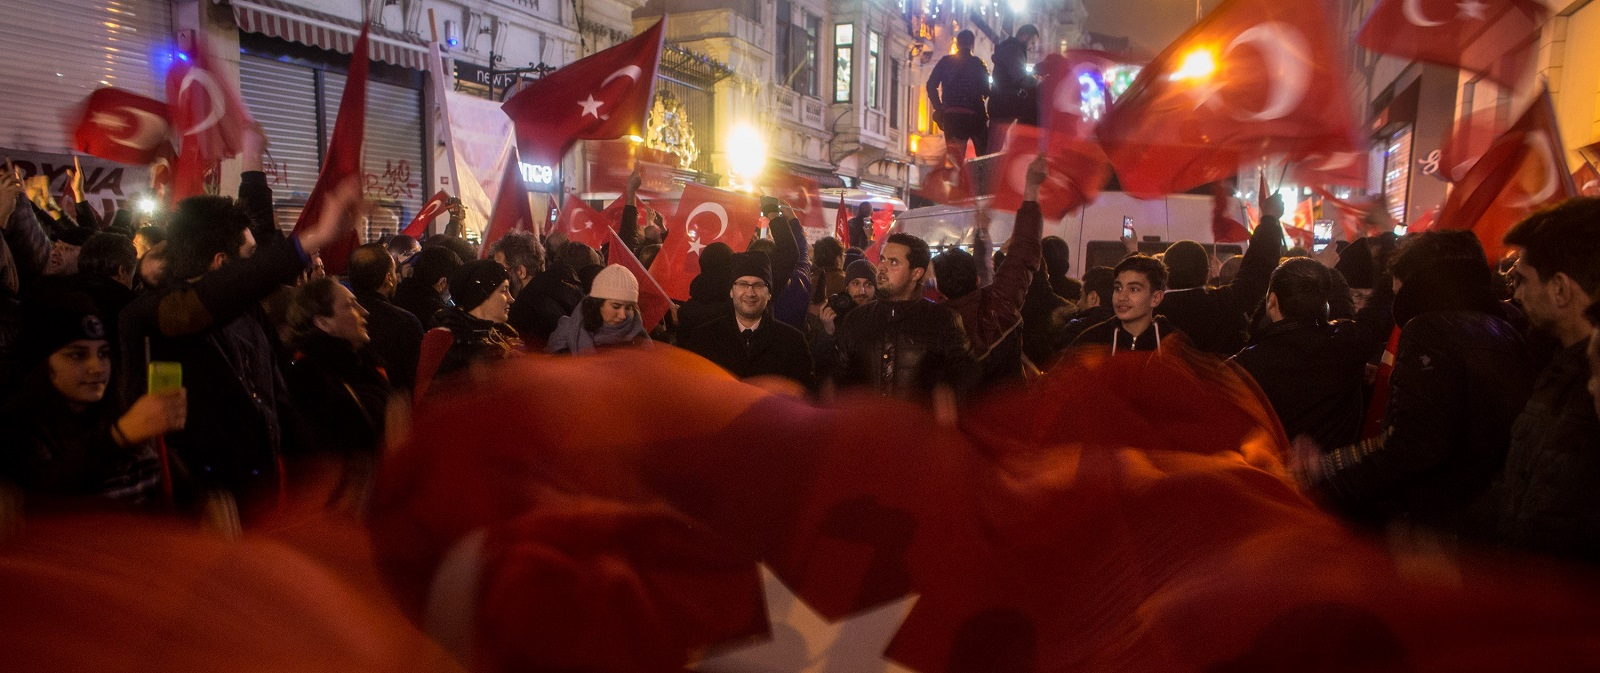 Protesters outside the Dutch Consulate on 12 March in Istanbul, Turkey (Photo: Chris McGrath/Getty)